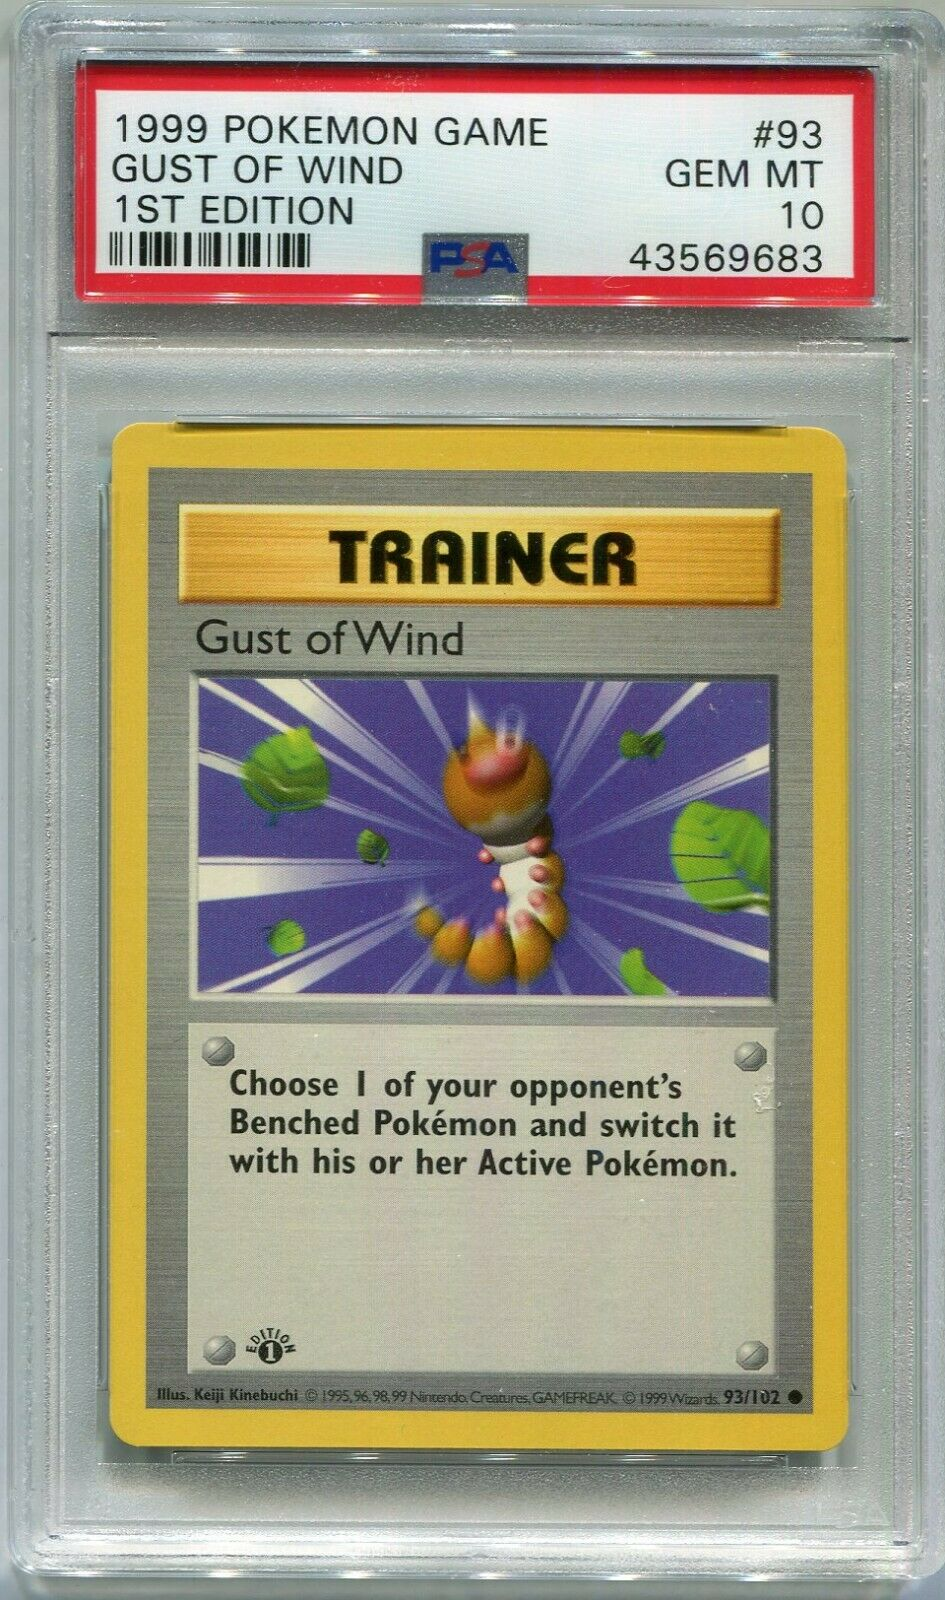 Pokemon Card 1st Edition Shadowless Gust of Wind Base 93102 PSA 10 Gem Mint